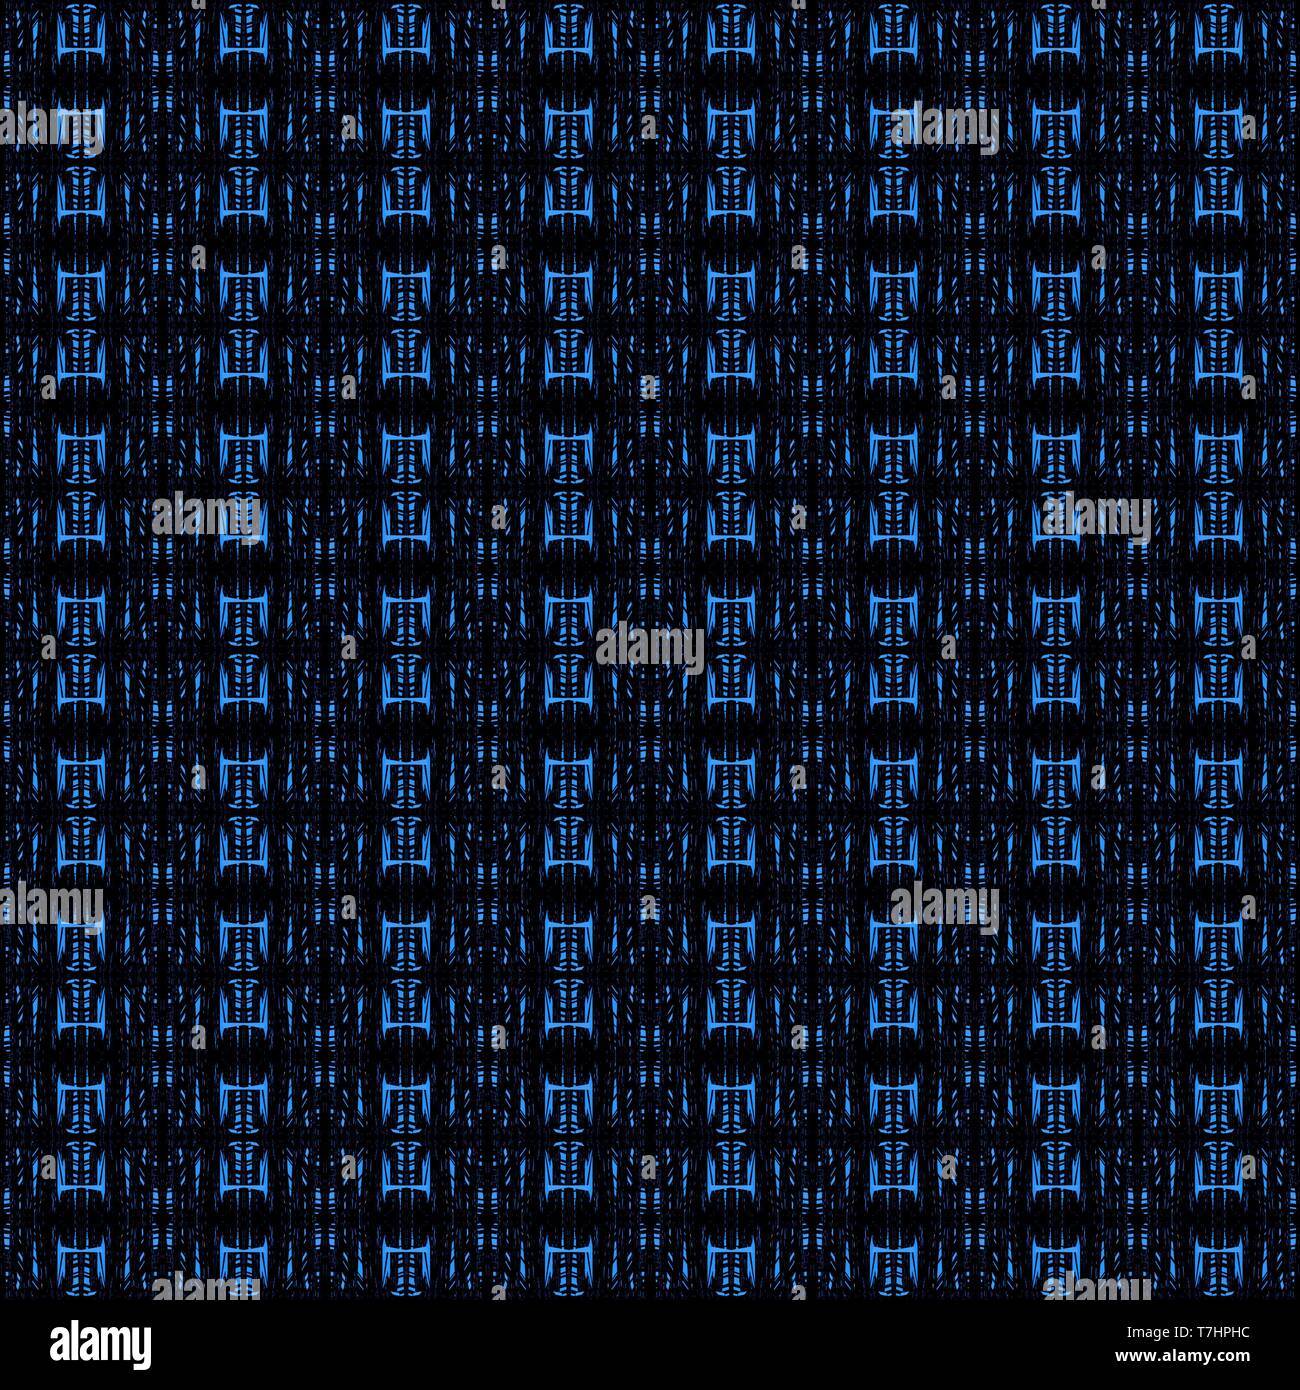 tileable pattern with royal blue